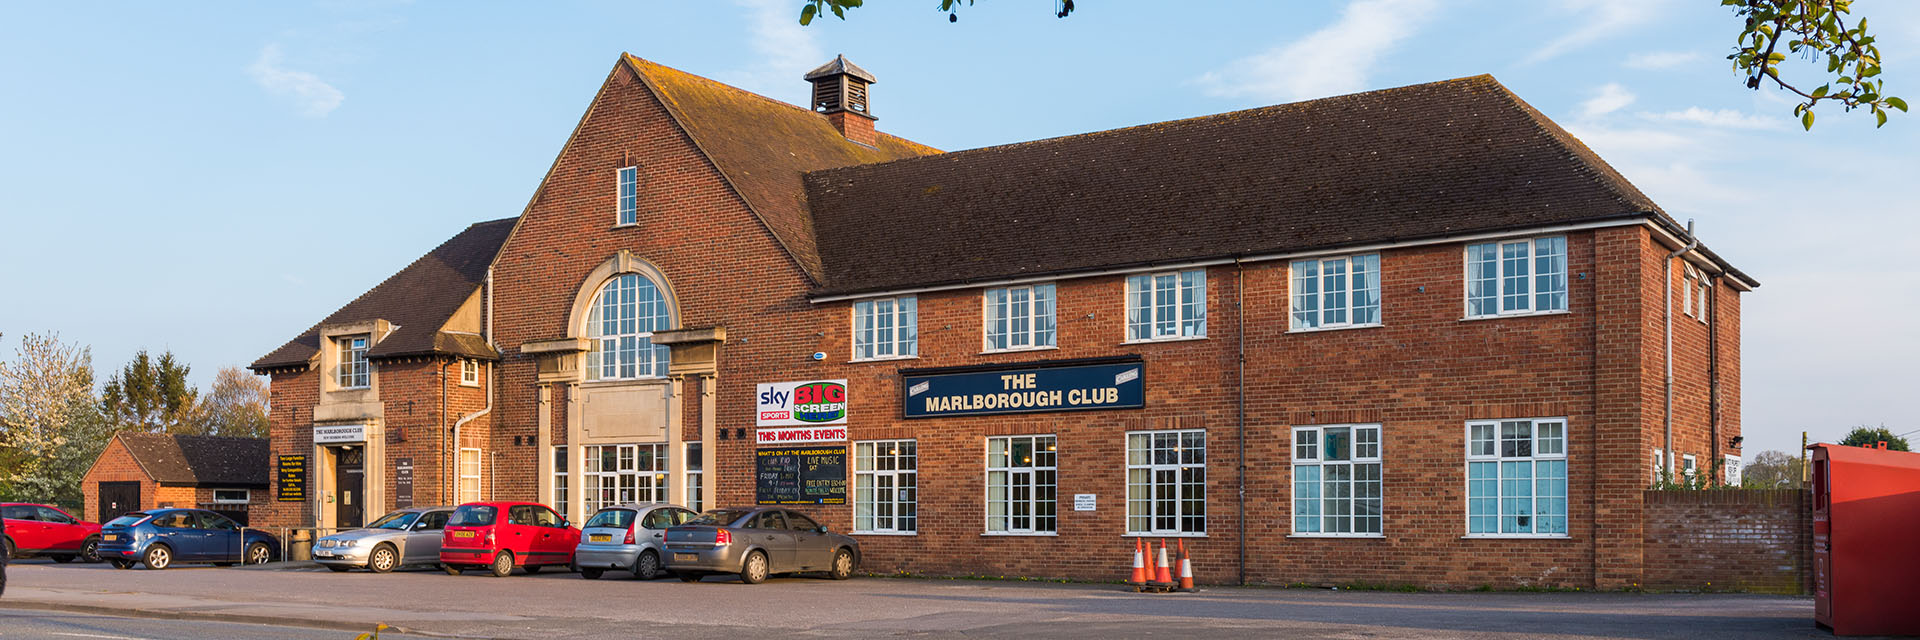 Marlborough Club, Didcot